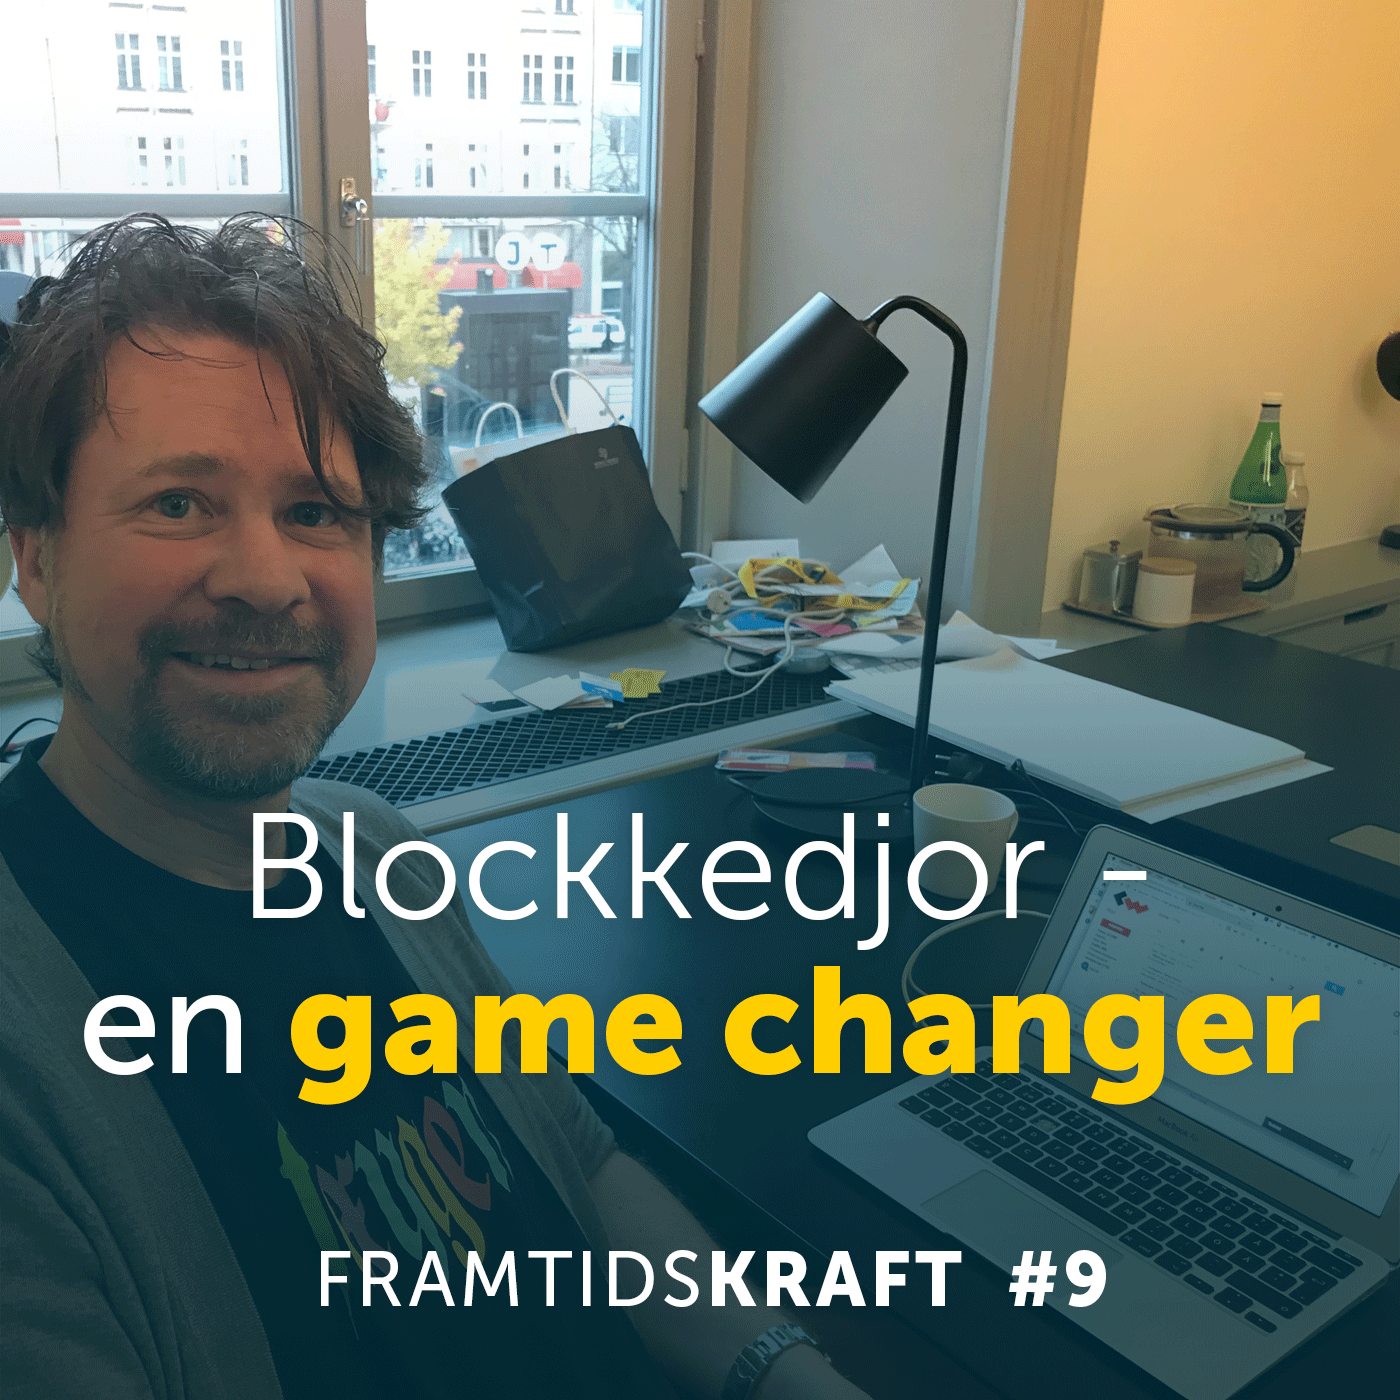 9. Blockkedjor - en game changer